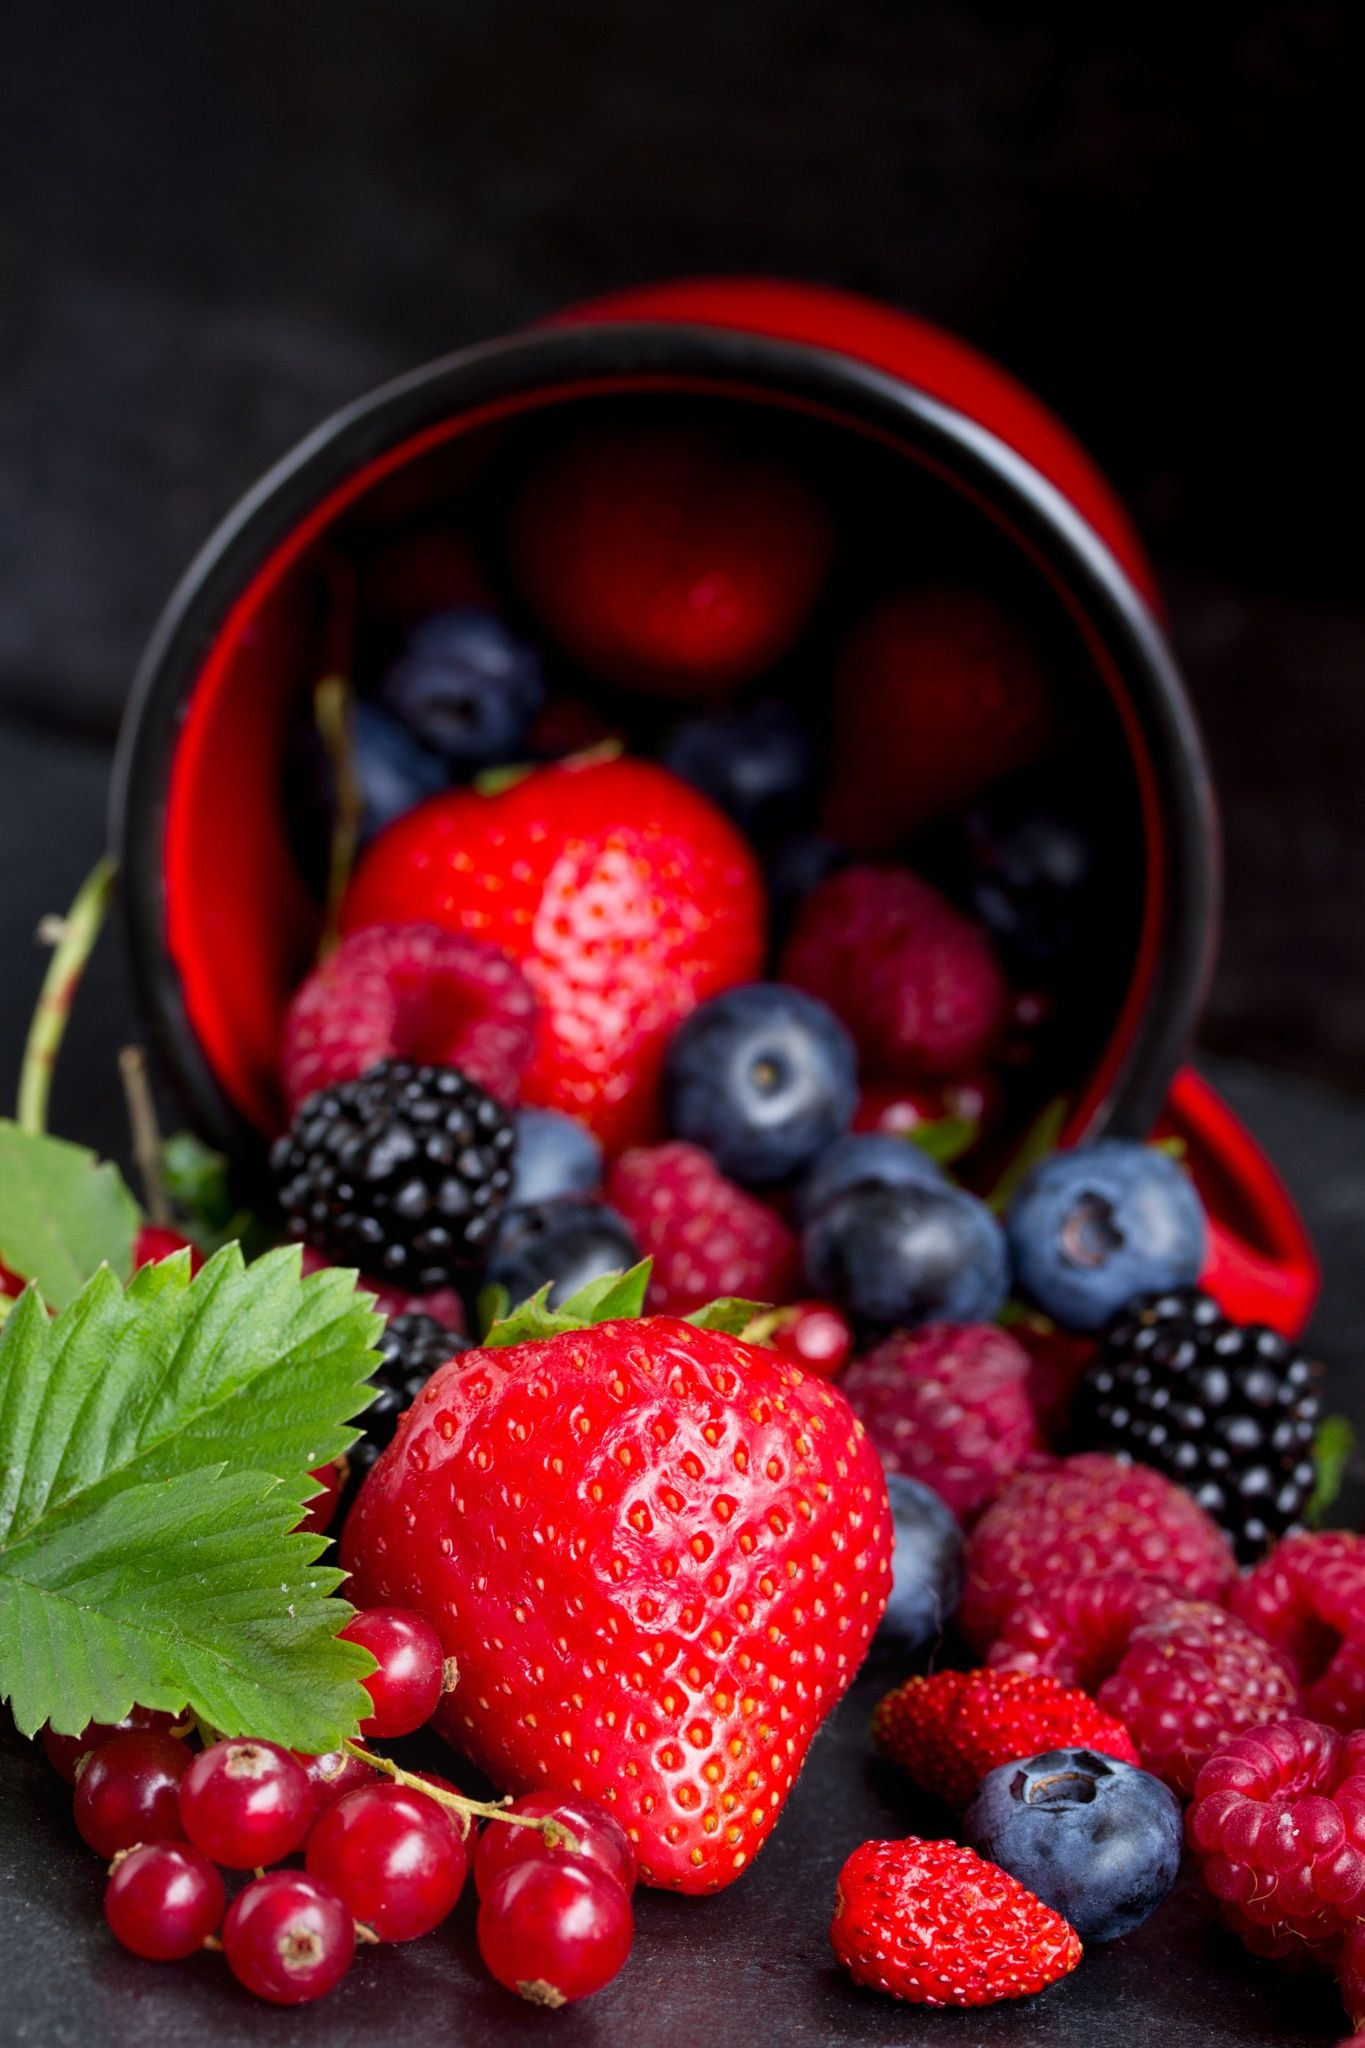 set+of++fresh+berries+-+fresh++berries+falling+out+of+red+cup++on+black++background,+low+key